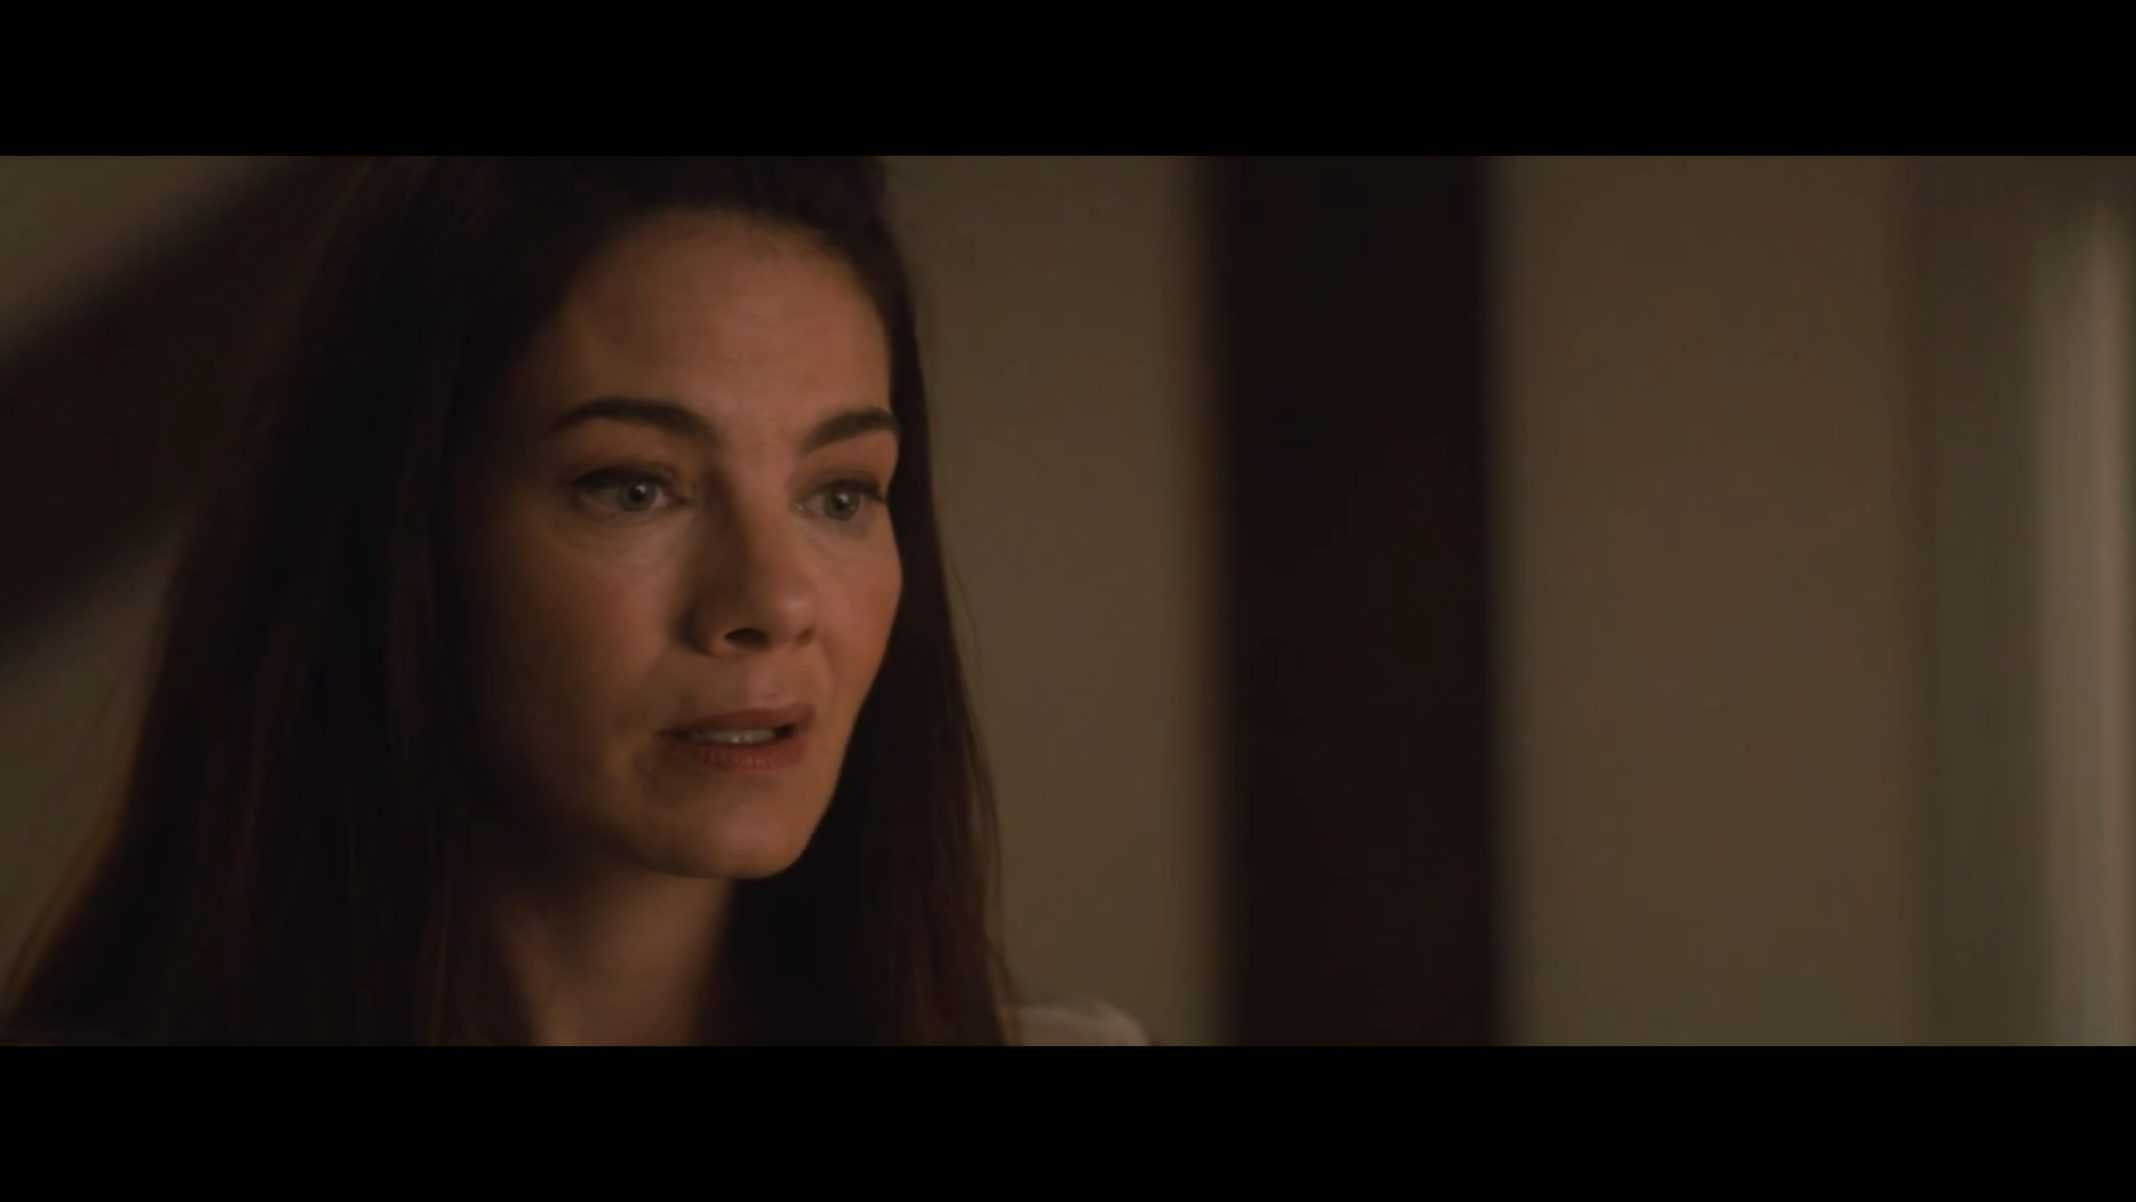 Helen (Michelle Monaghan) dealing with what is being said to her